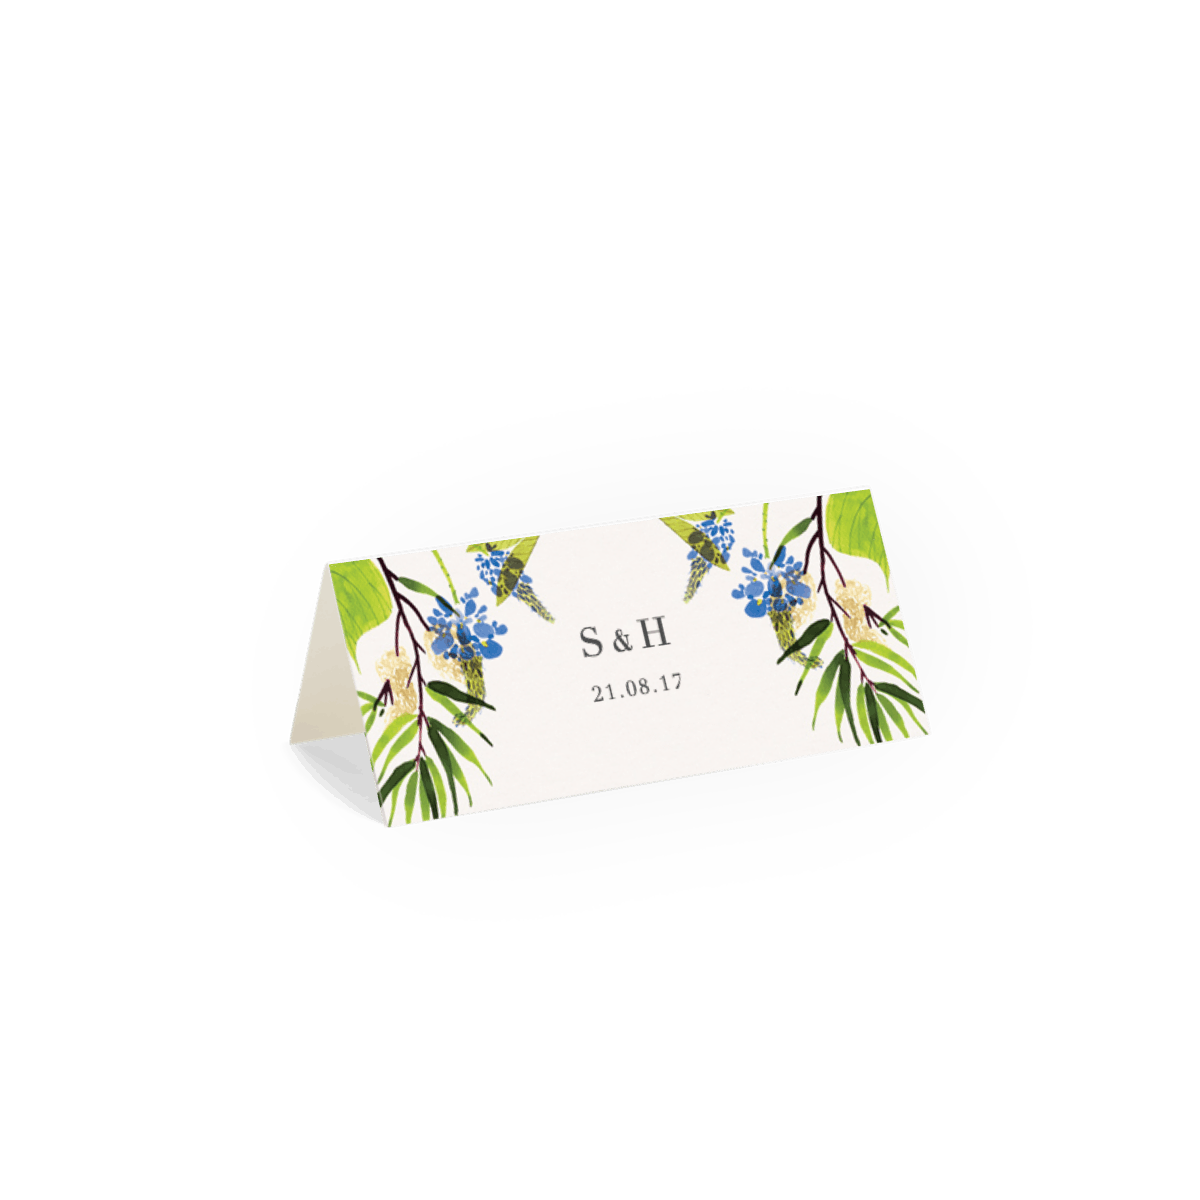 Https%3a%2f%2fwww.papier.com%2fproduct image%2f5571%2f15%2fblue spring 1456 back 1492784430.png?ixlib=rb 1.1